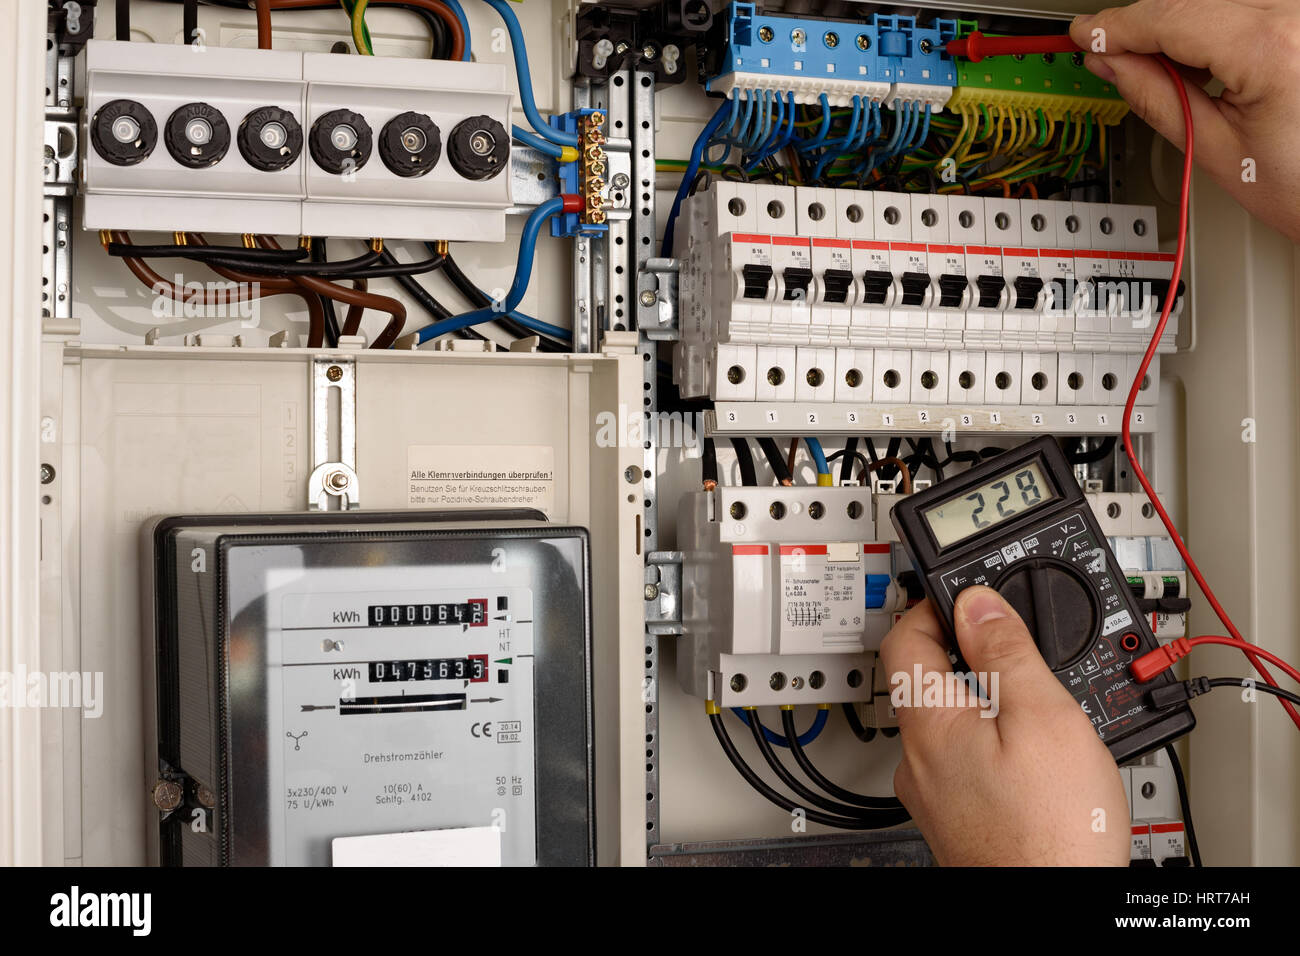 fuse wire stock photos fuse wire stock images alamy holden astra ah fuse  box location